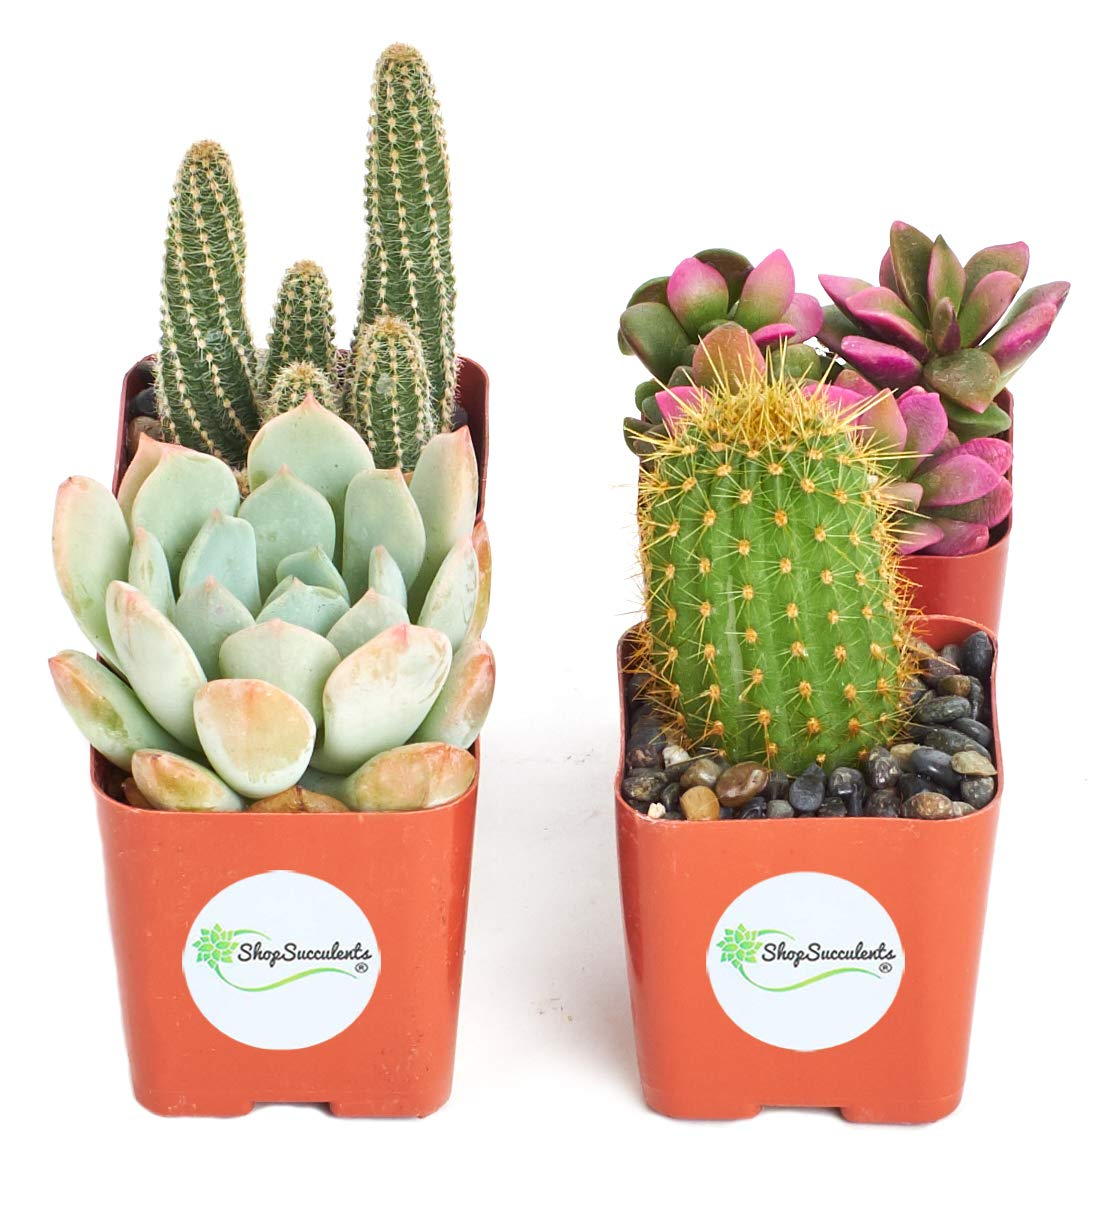 Shop Succulents | Cactus & Succulent Collection of Live Plants, Hand Selected Variety Pack of Cacti and Mini Succulents | Collection of 4 in 2'' pots